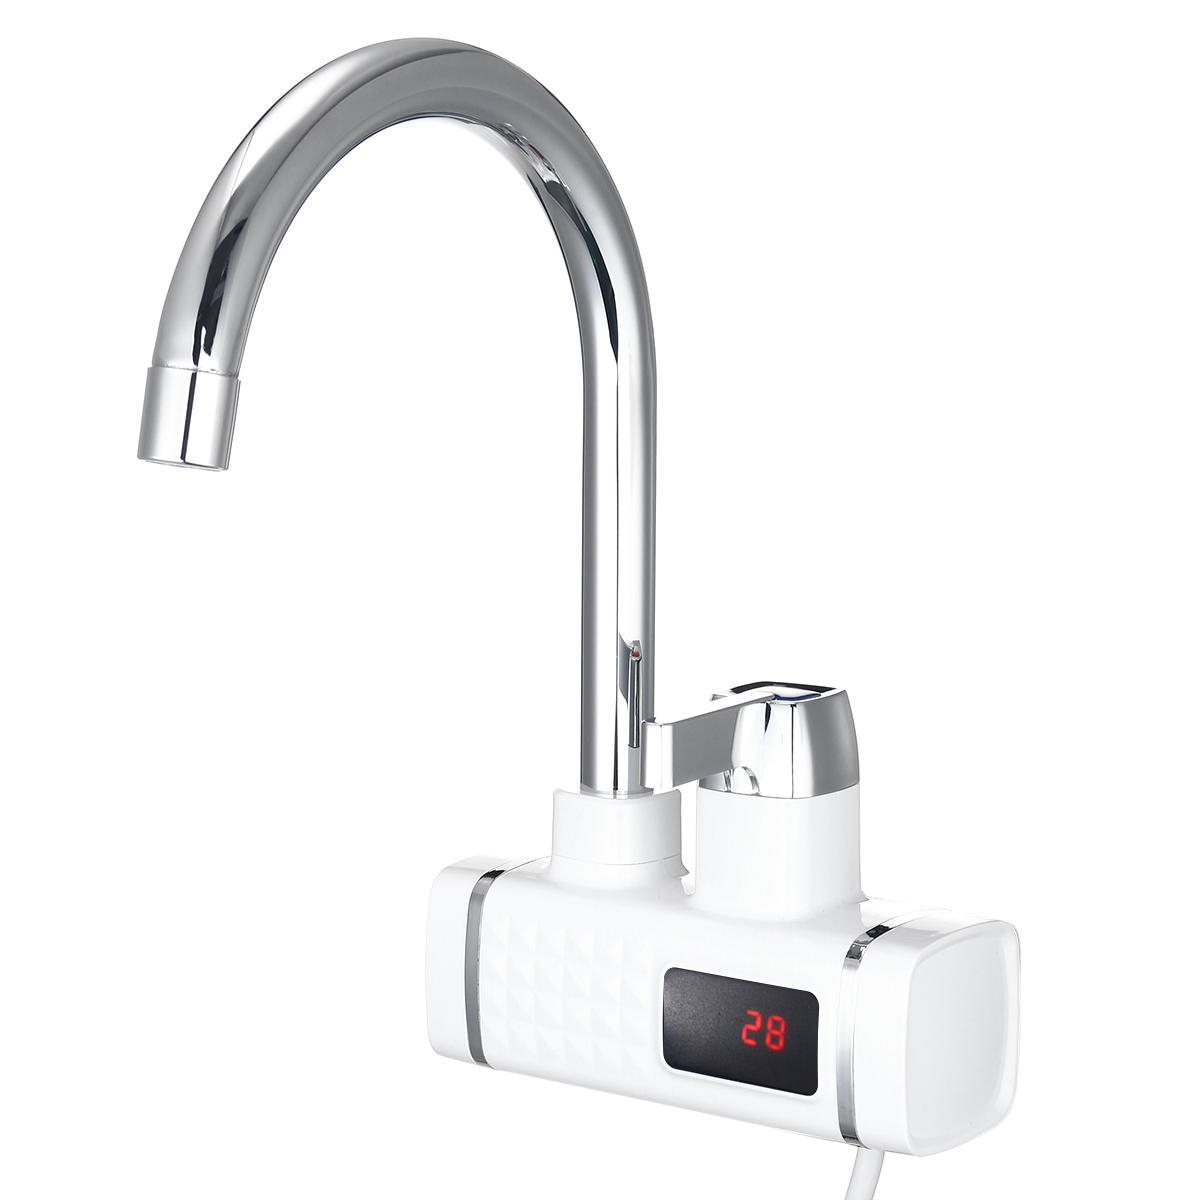 42 99 Led Display 220v 3000w Electric Faucet Tap Hot Water Heater